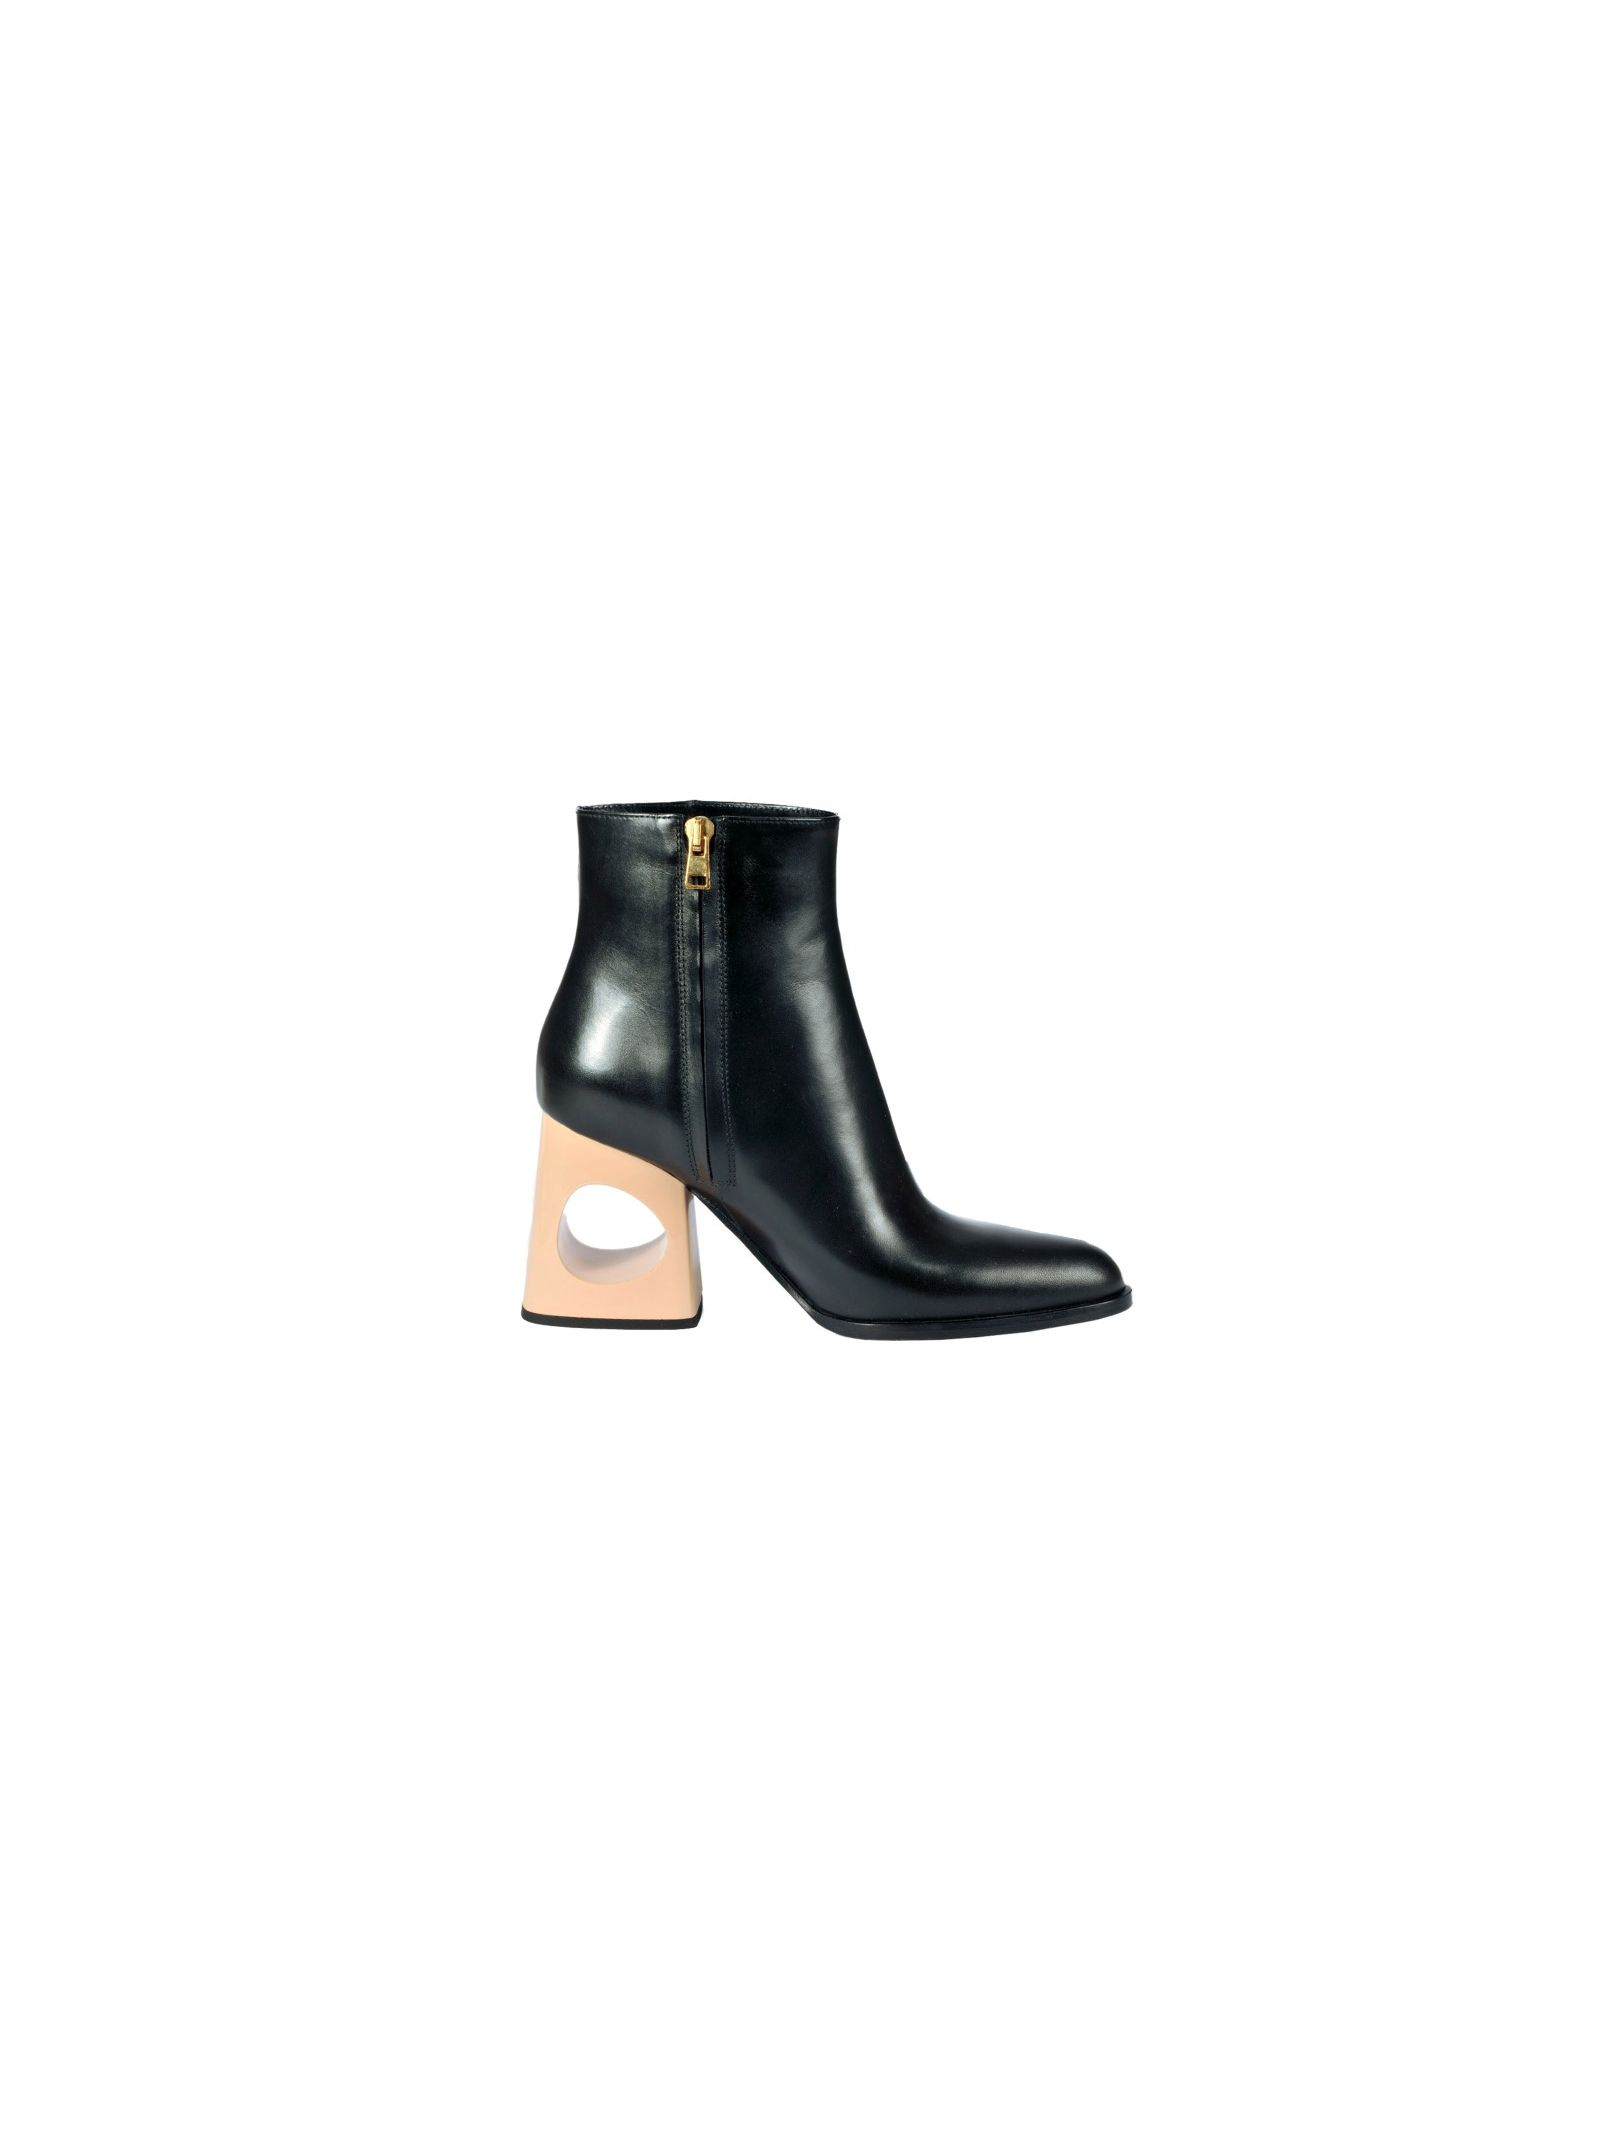 Marni Cut-out Heel Ankle Boots - Marni - Home